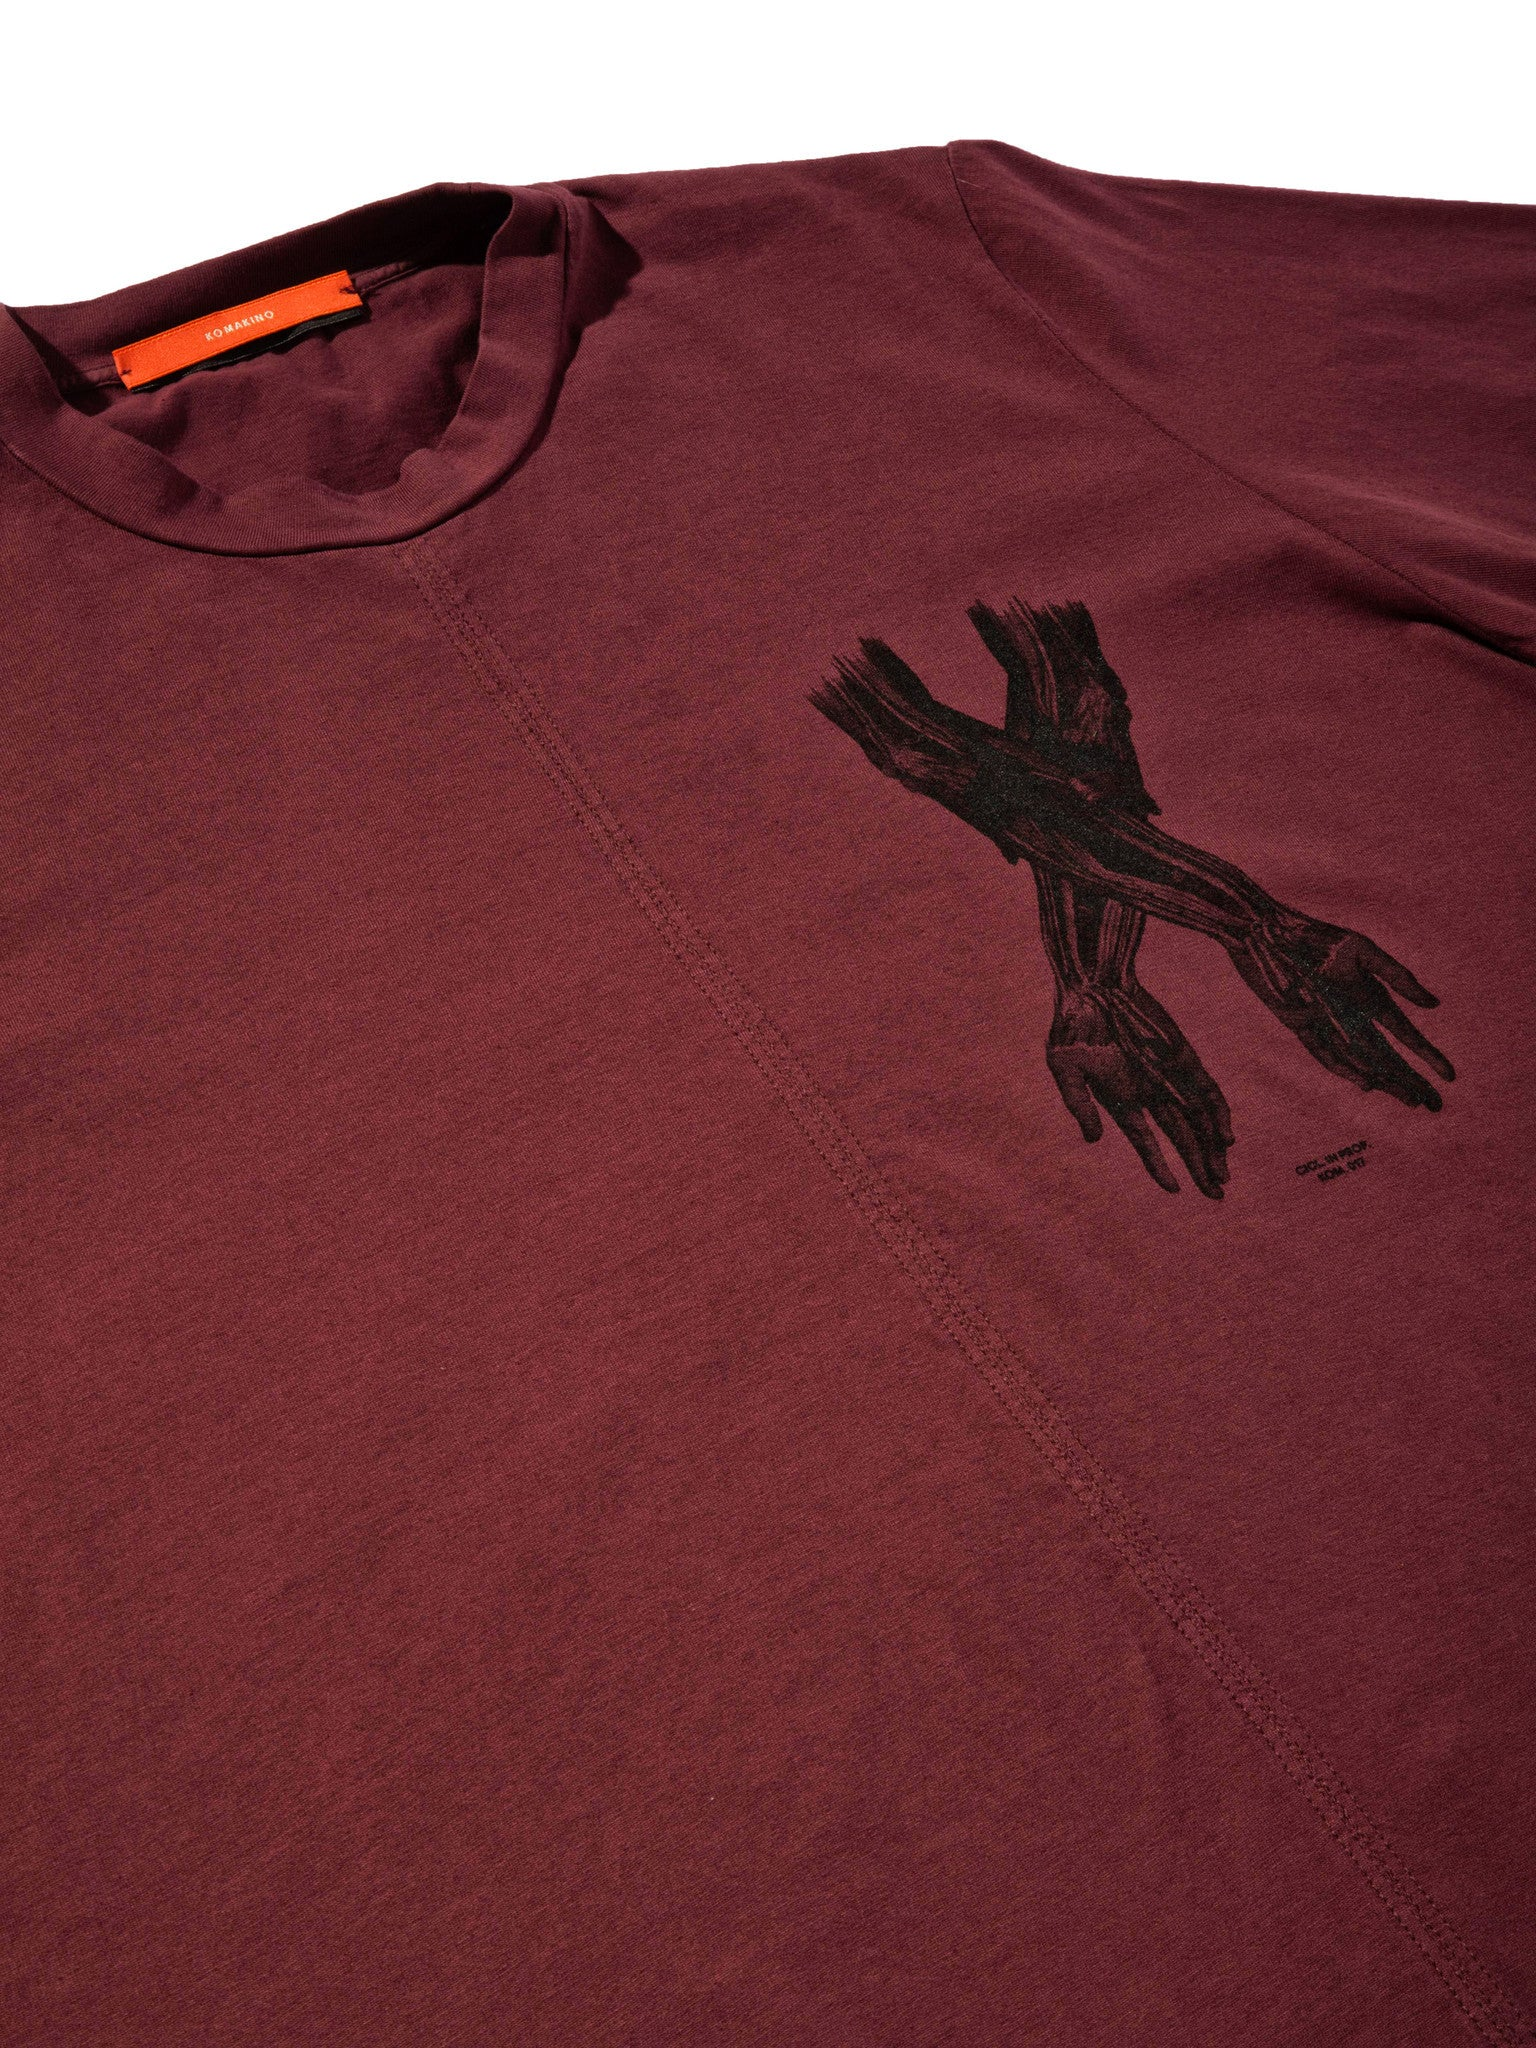 Burgundy Jersey T-Shirt (Boxy Fit) 6